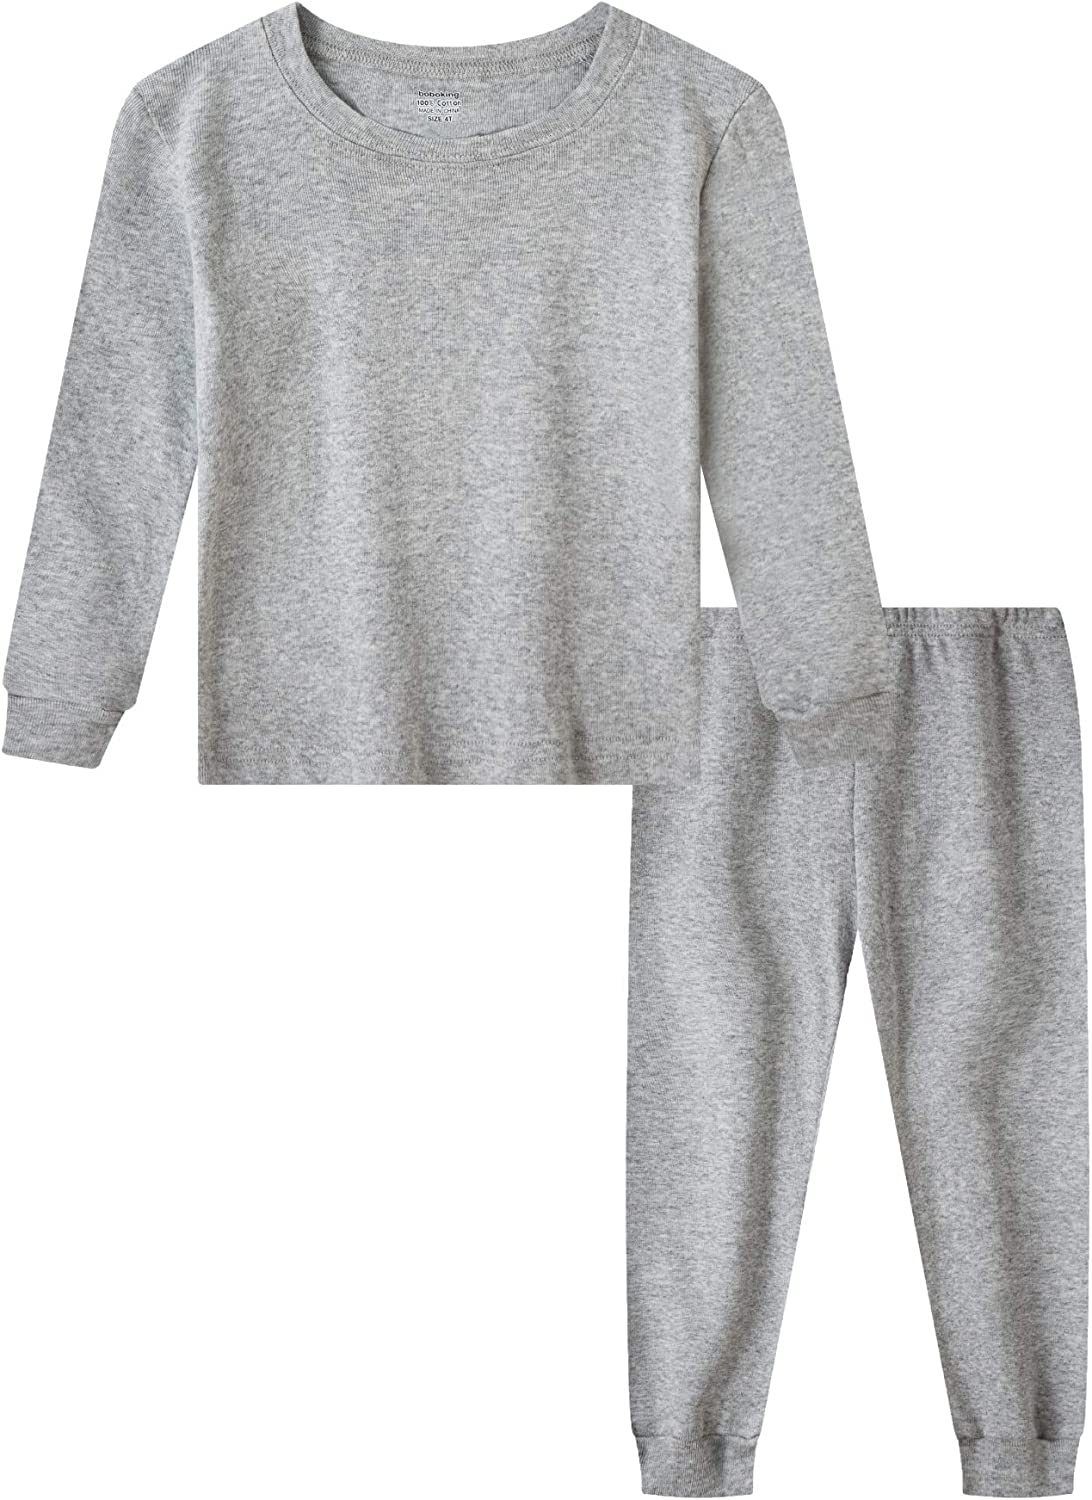 Boboking Boys and Girls Solid Color Pajamas 100% Cotton Long Sleeve Pjs Toddler Clothes Kids Sleepwear